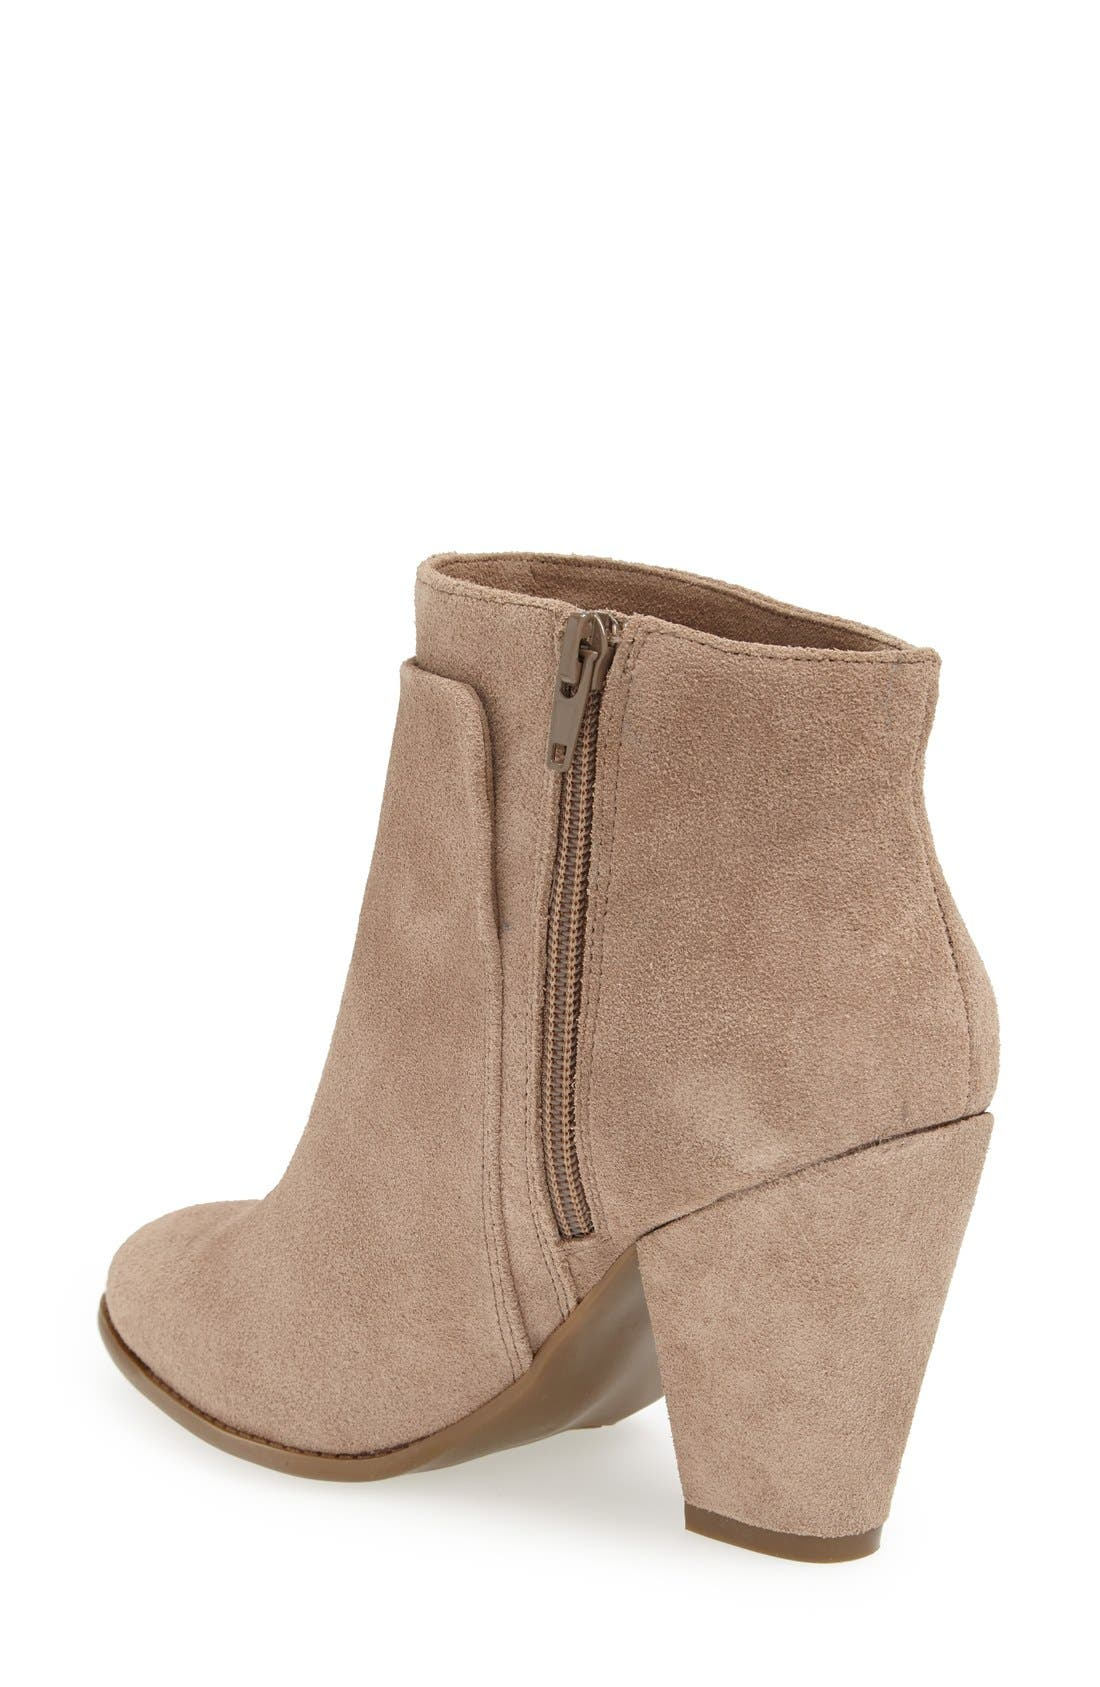 Alternate Image 2  - Sole Society 'Erlina' Leather Ankle Bootie (Women)